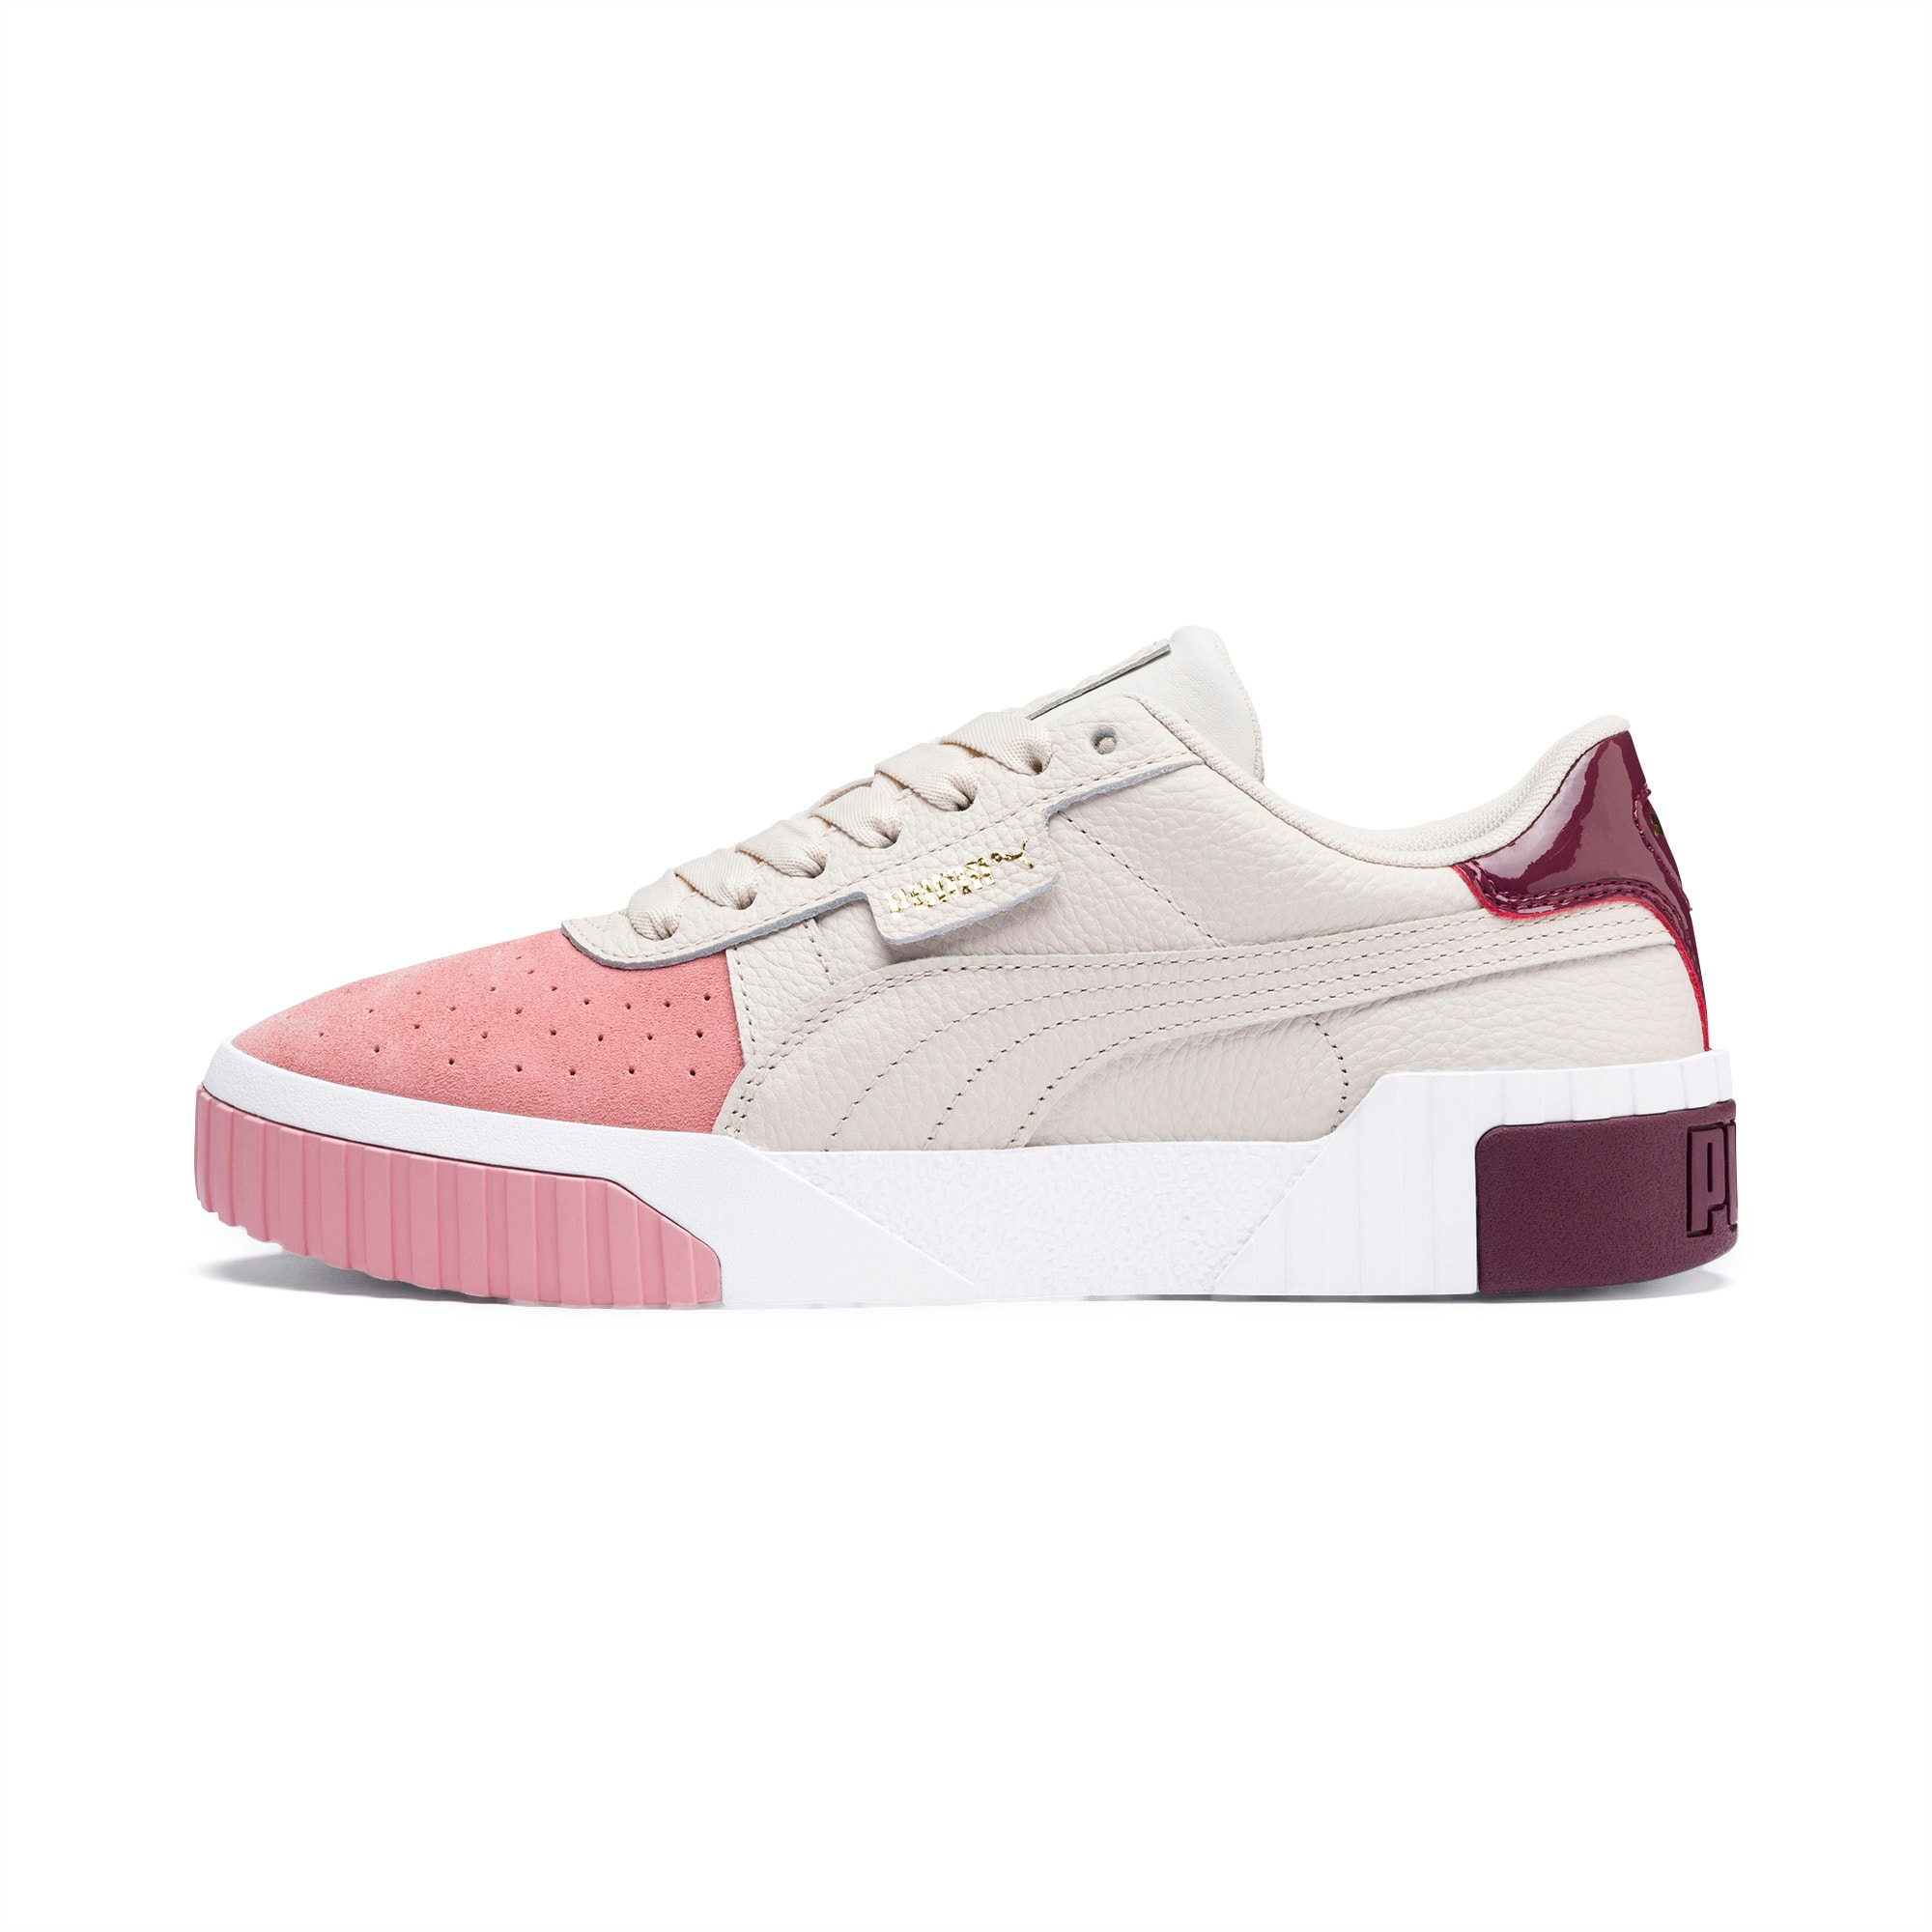 Cali Remix Women's Trainers